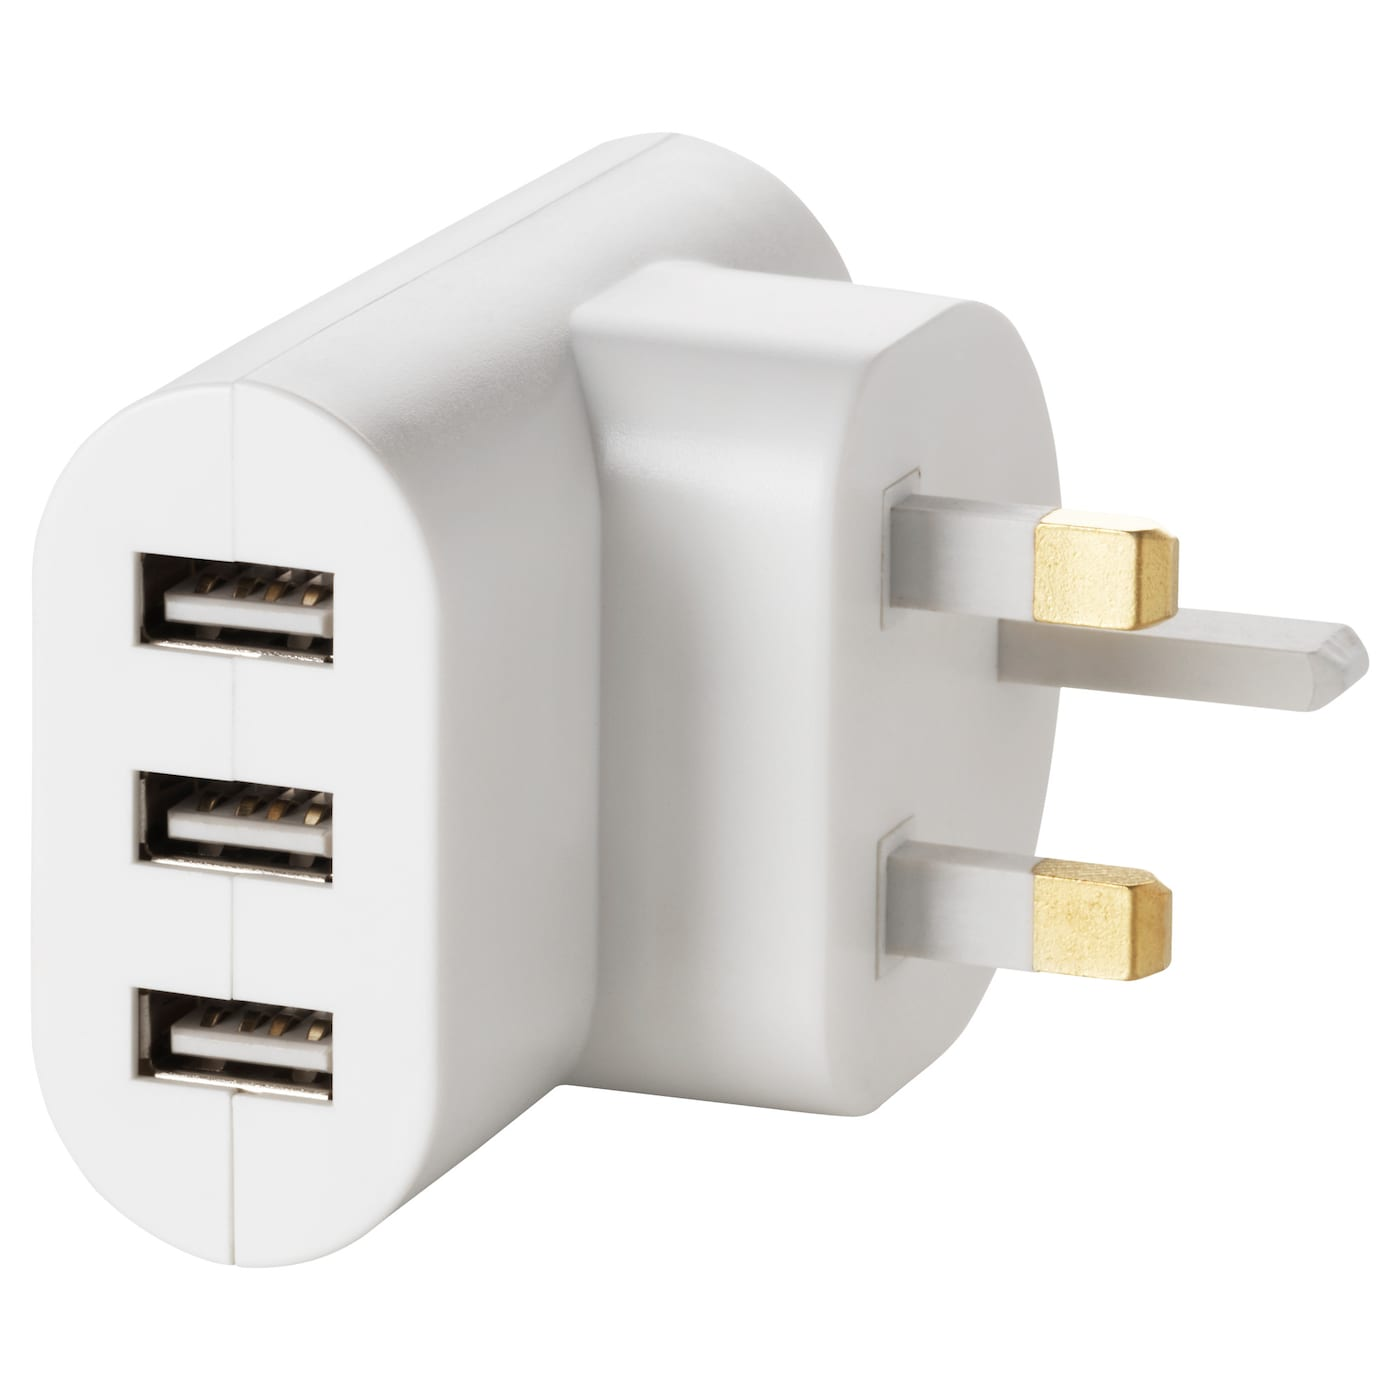 IKEA KOPPLA 3-port USB charger